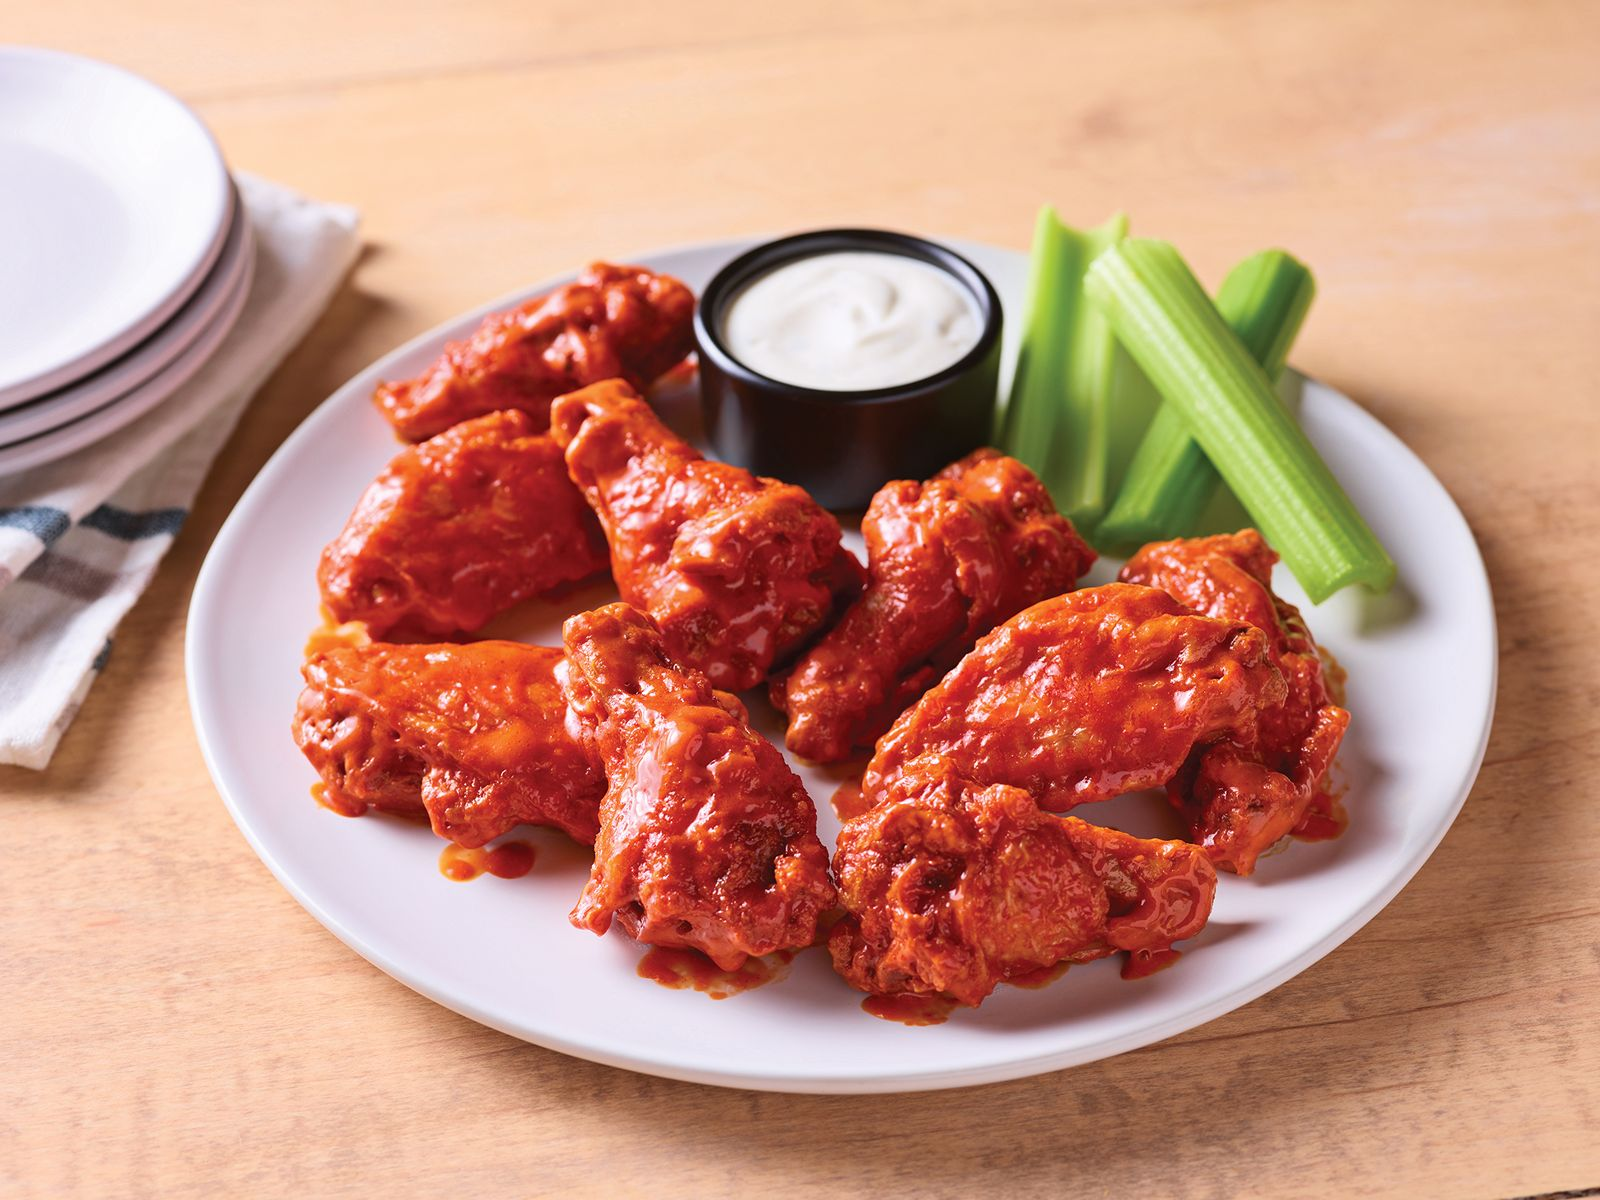 All You Can Eat Wings - Bone-In and Boneless - Are Back at Select Texas Applebee's!